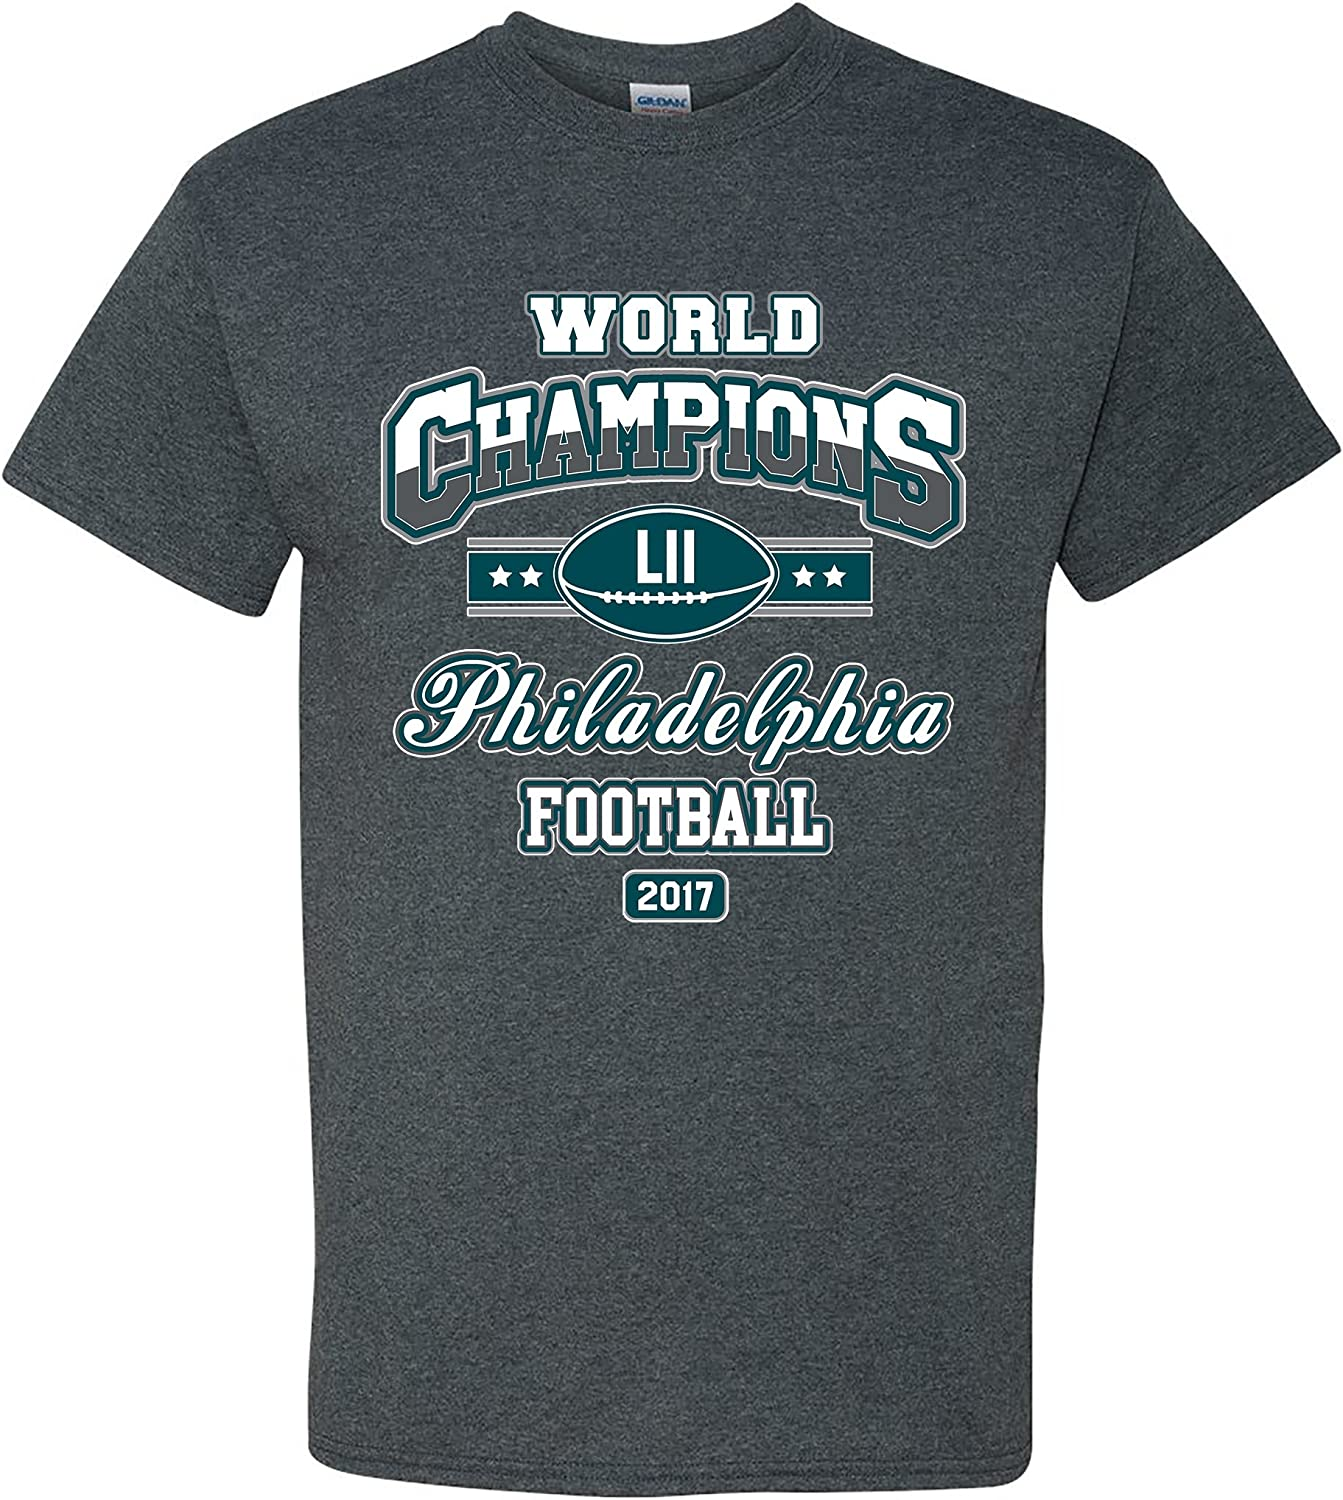 Philly Philly Philadelphia Champion Football Sports DT Youth Kids T-Shirt Tee